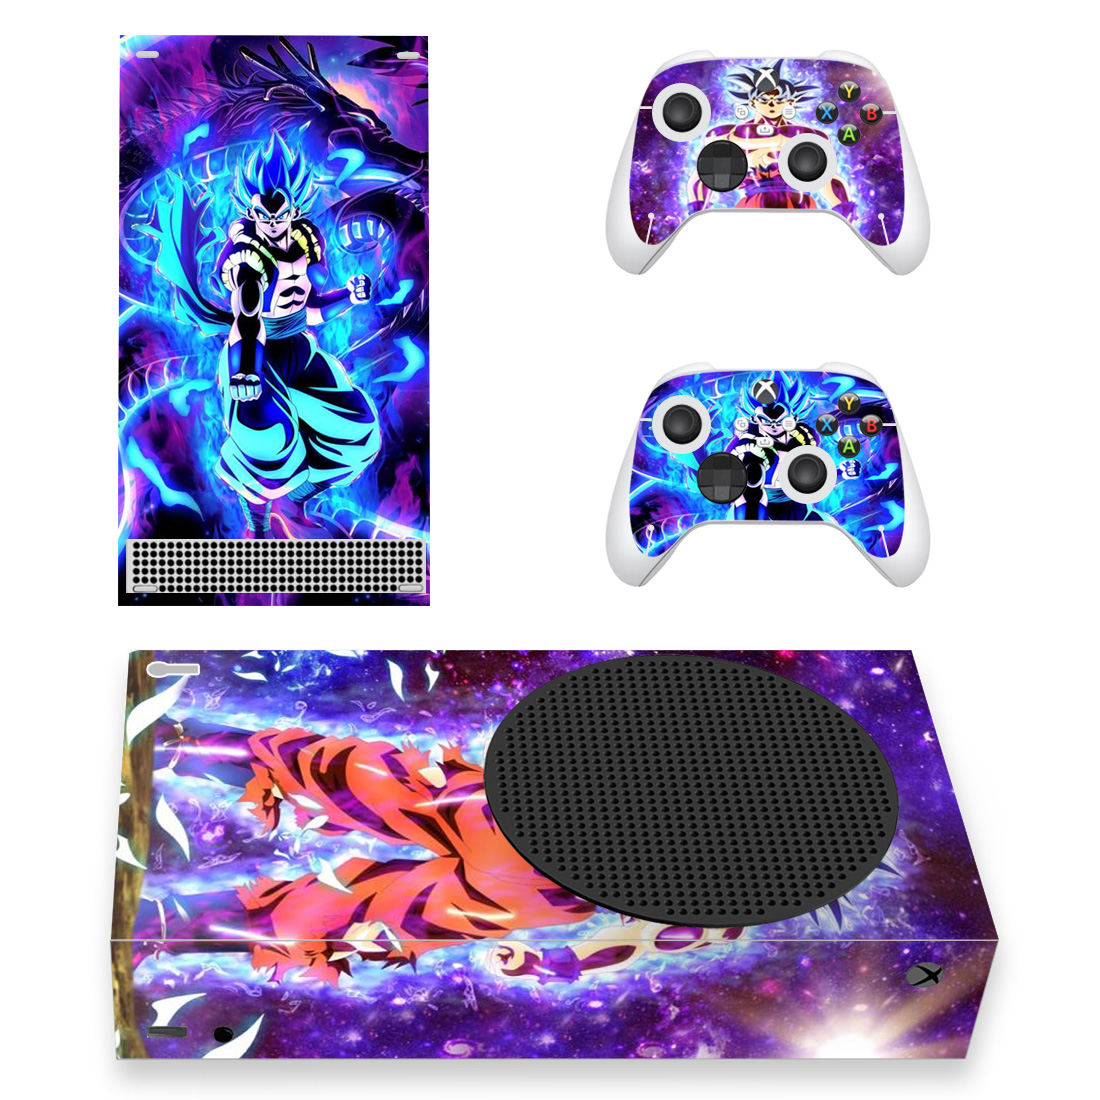 Gogeta Blue Dragon Ball Skin Sticker For Xbox Series S And Controllers